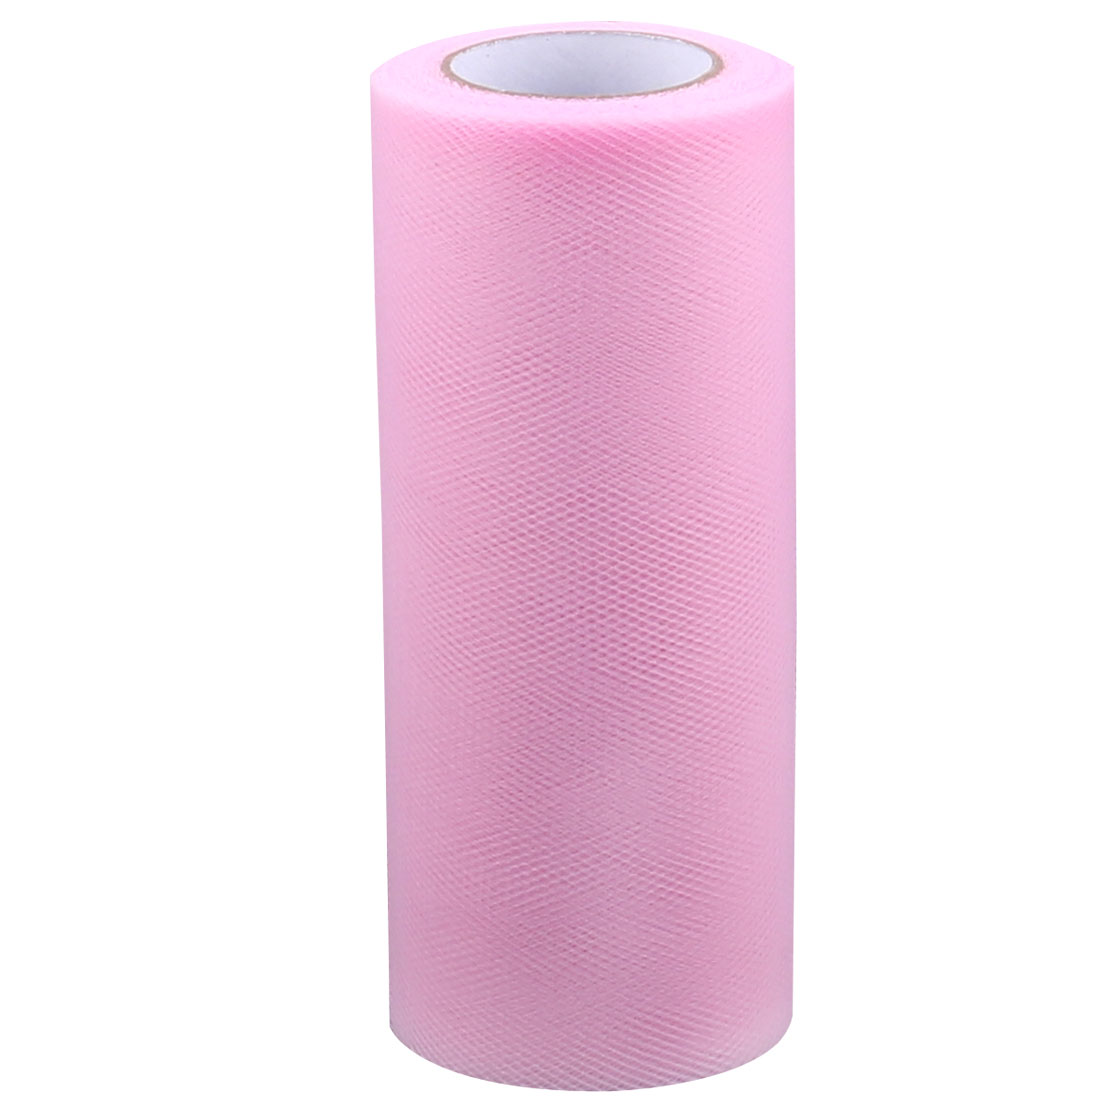 Wedding Party Banquet Nylon Mesh Tulle Roll Spool Craft Decoration Pink 25 Yards